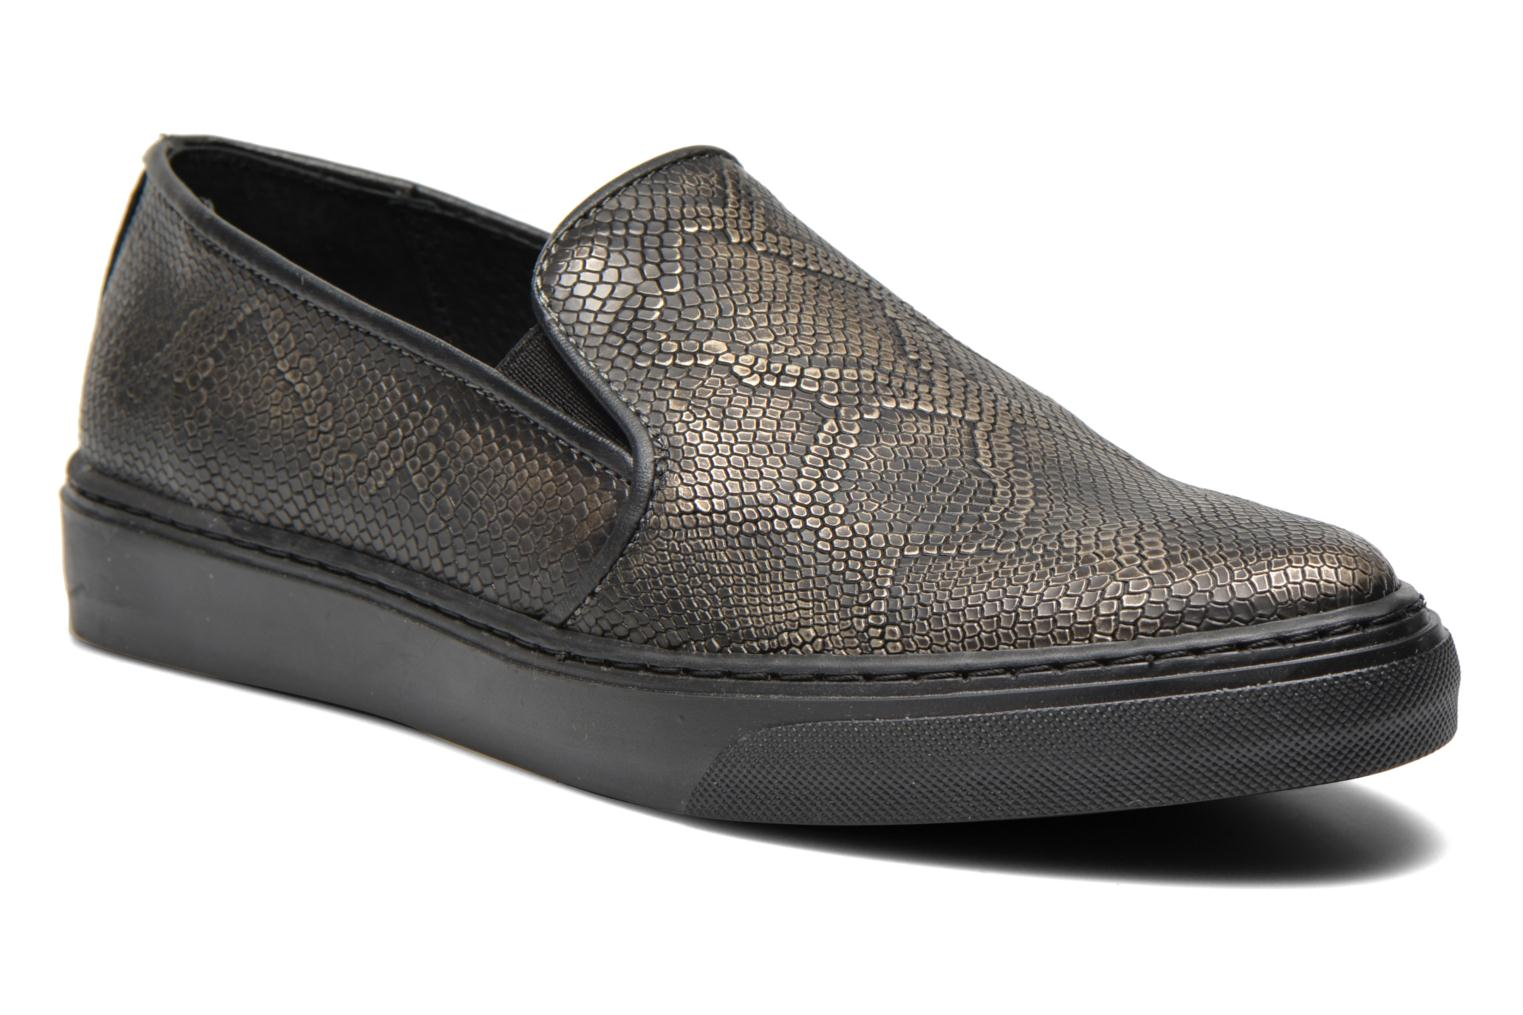 Marques Chaussure femme Bronx femme Fiama Pewter